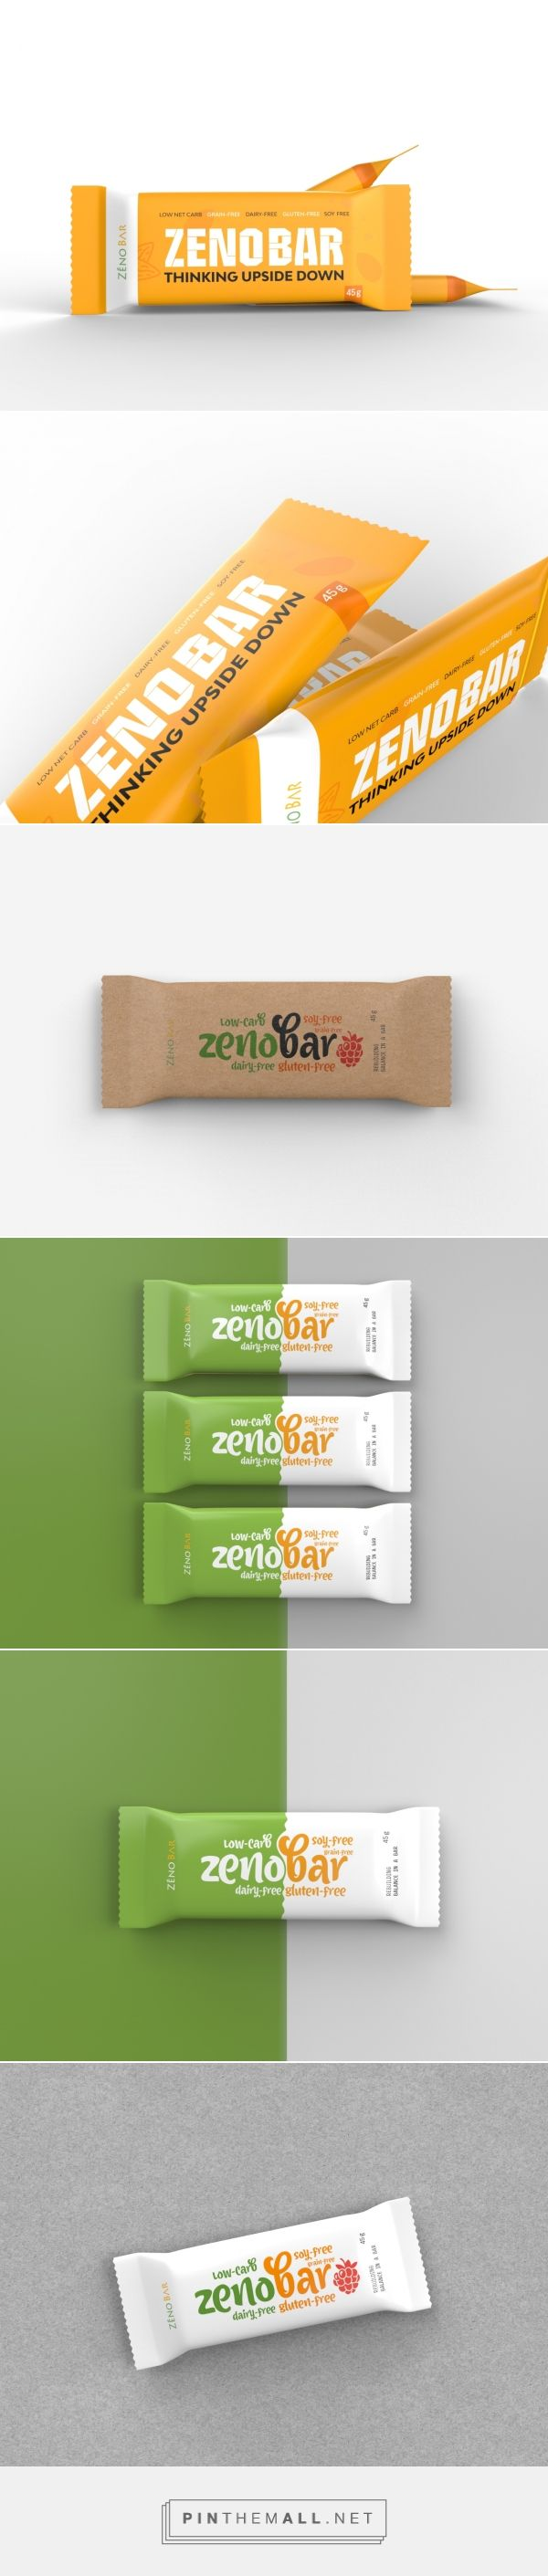 Zenobar Energy Bar (Concept) - Packaging of the World - Creative Package Design Gallery - http://www.packagingoftheworld.com/2016/09/zenobar-energy-bar-concept.html